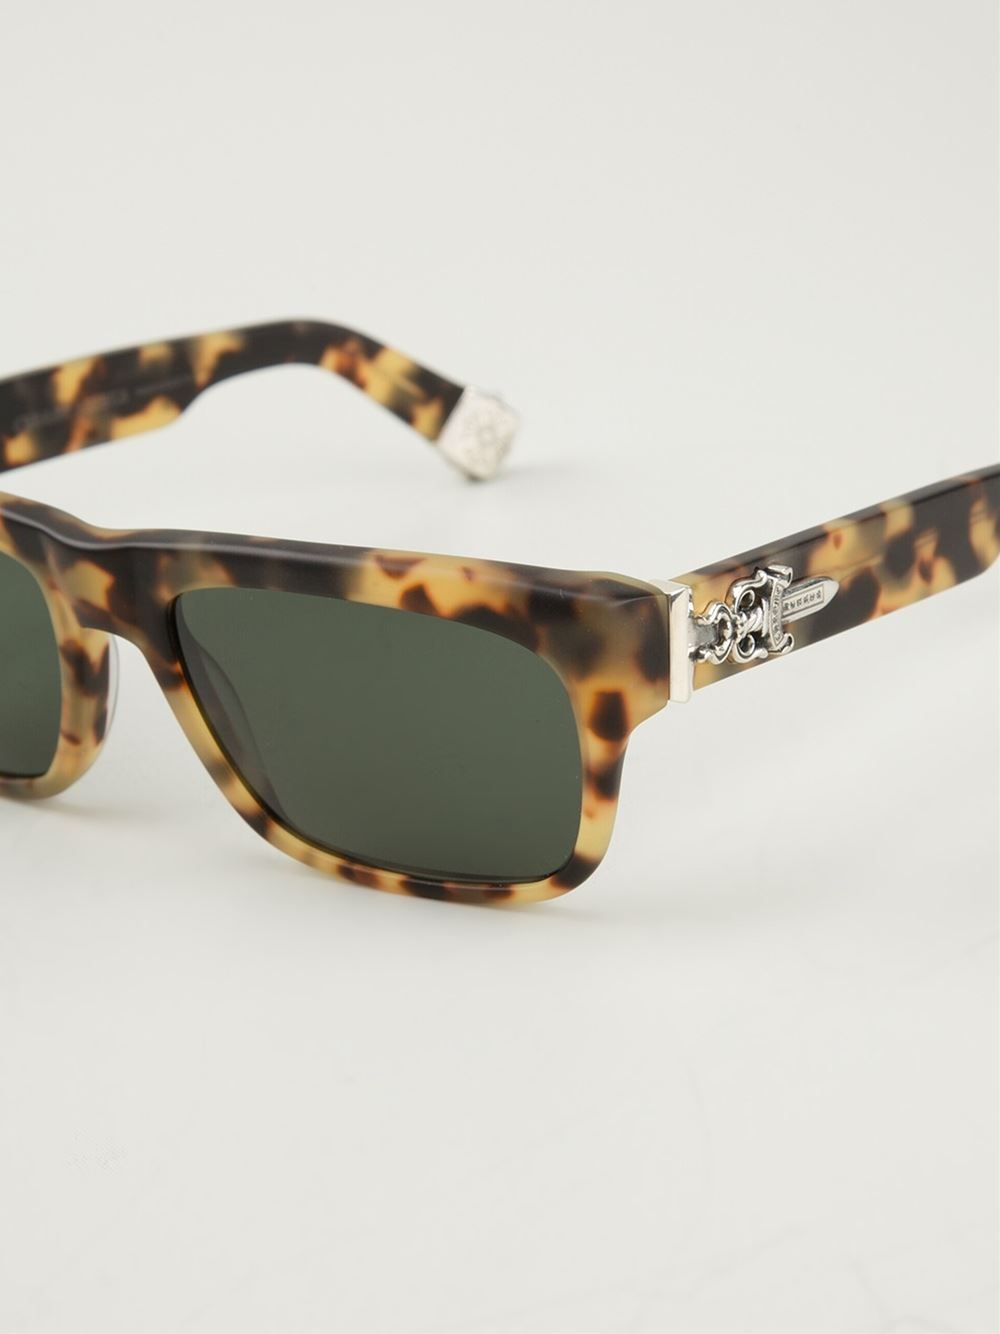 Brown \'Sluss Bussin\' sunglasses from Chrome Hearts featuring square ...